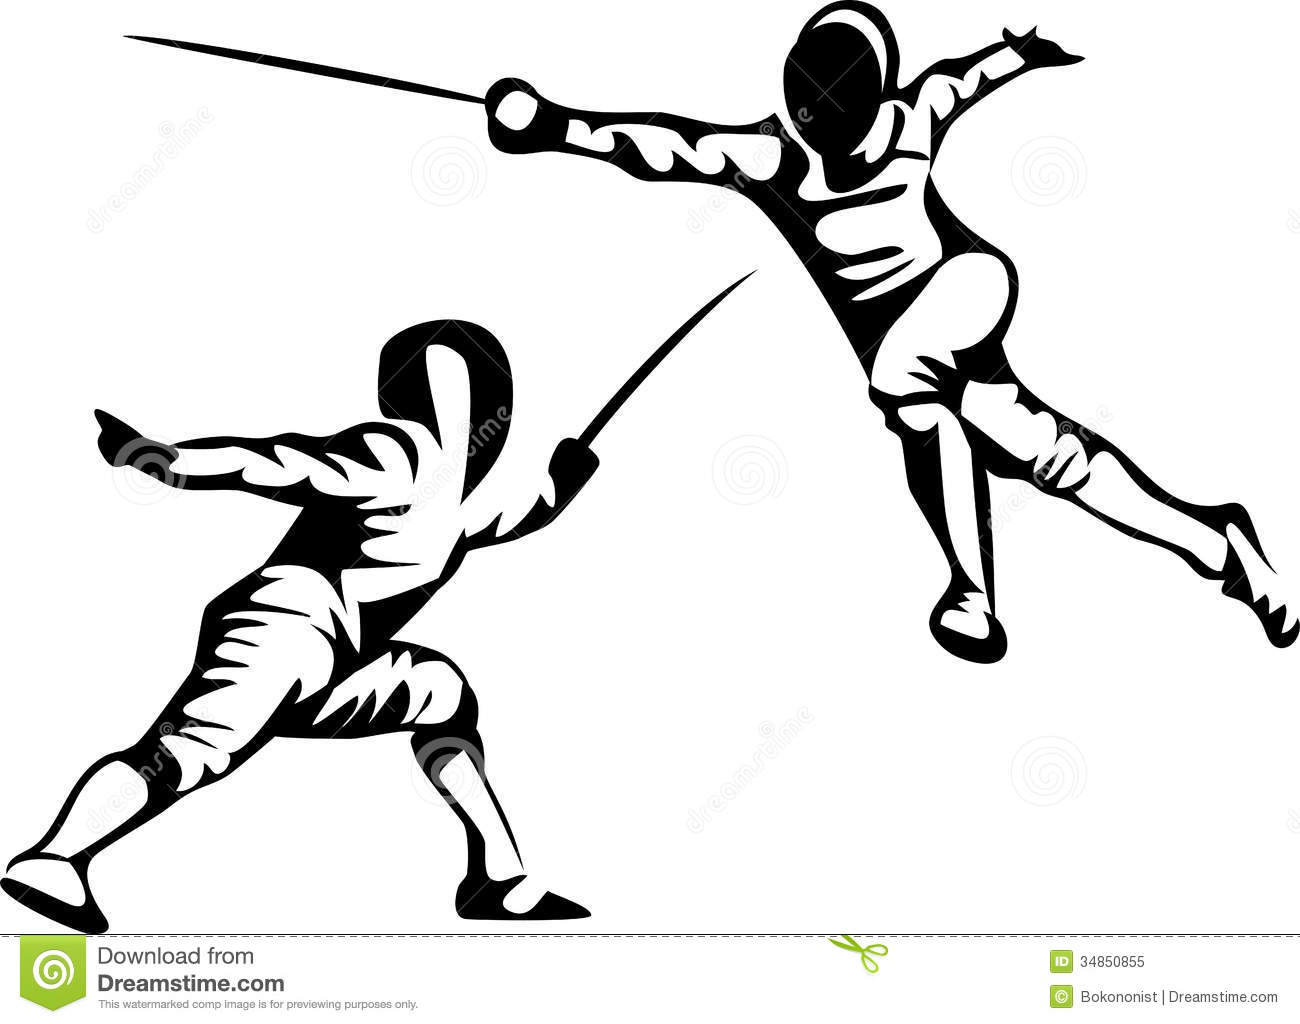 hight resolution of stylized fencing sport black and white illustration